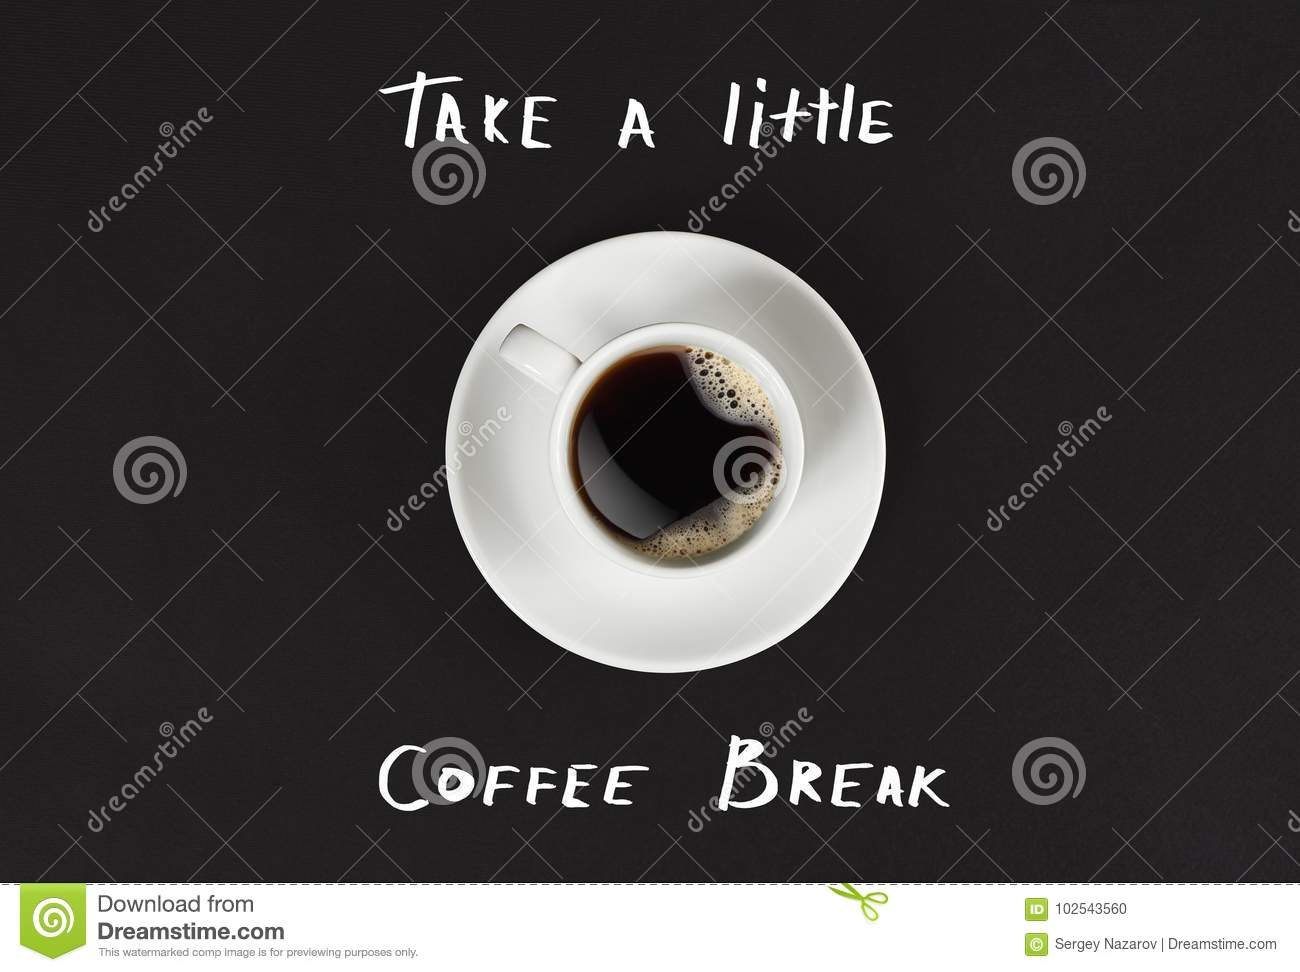 Take Break Coffeebreak : Top view of cup of black coffee and take a little coffee break